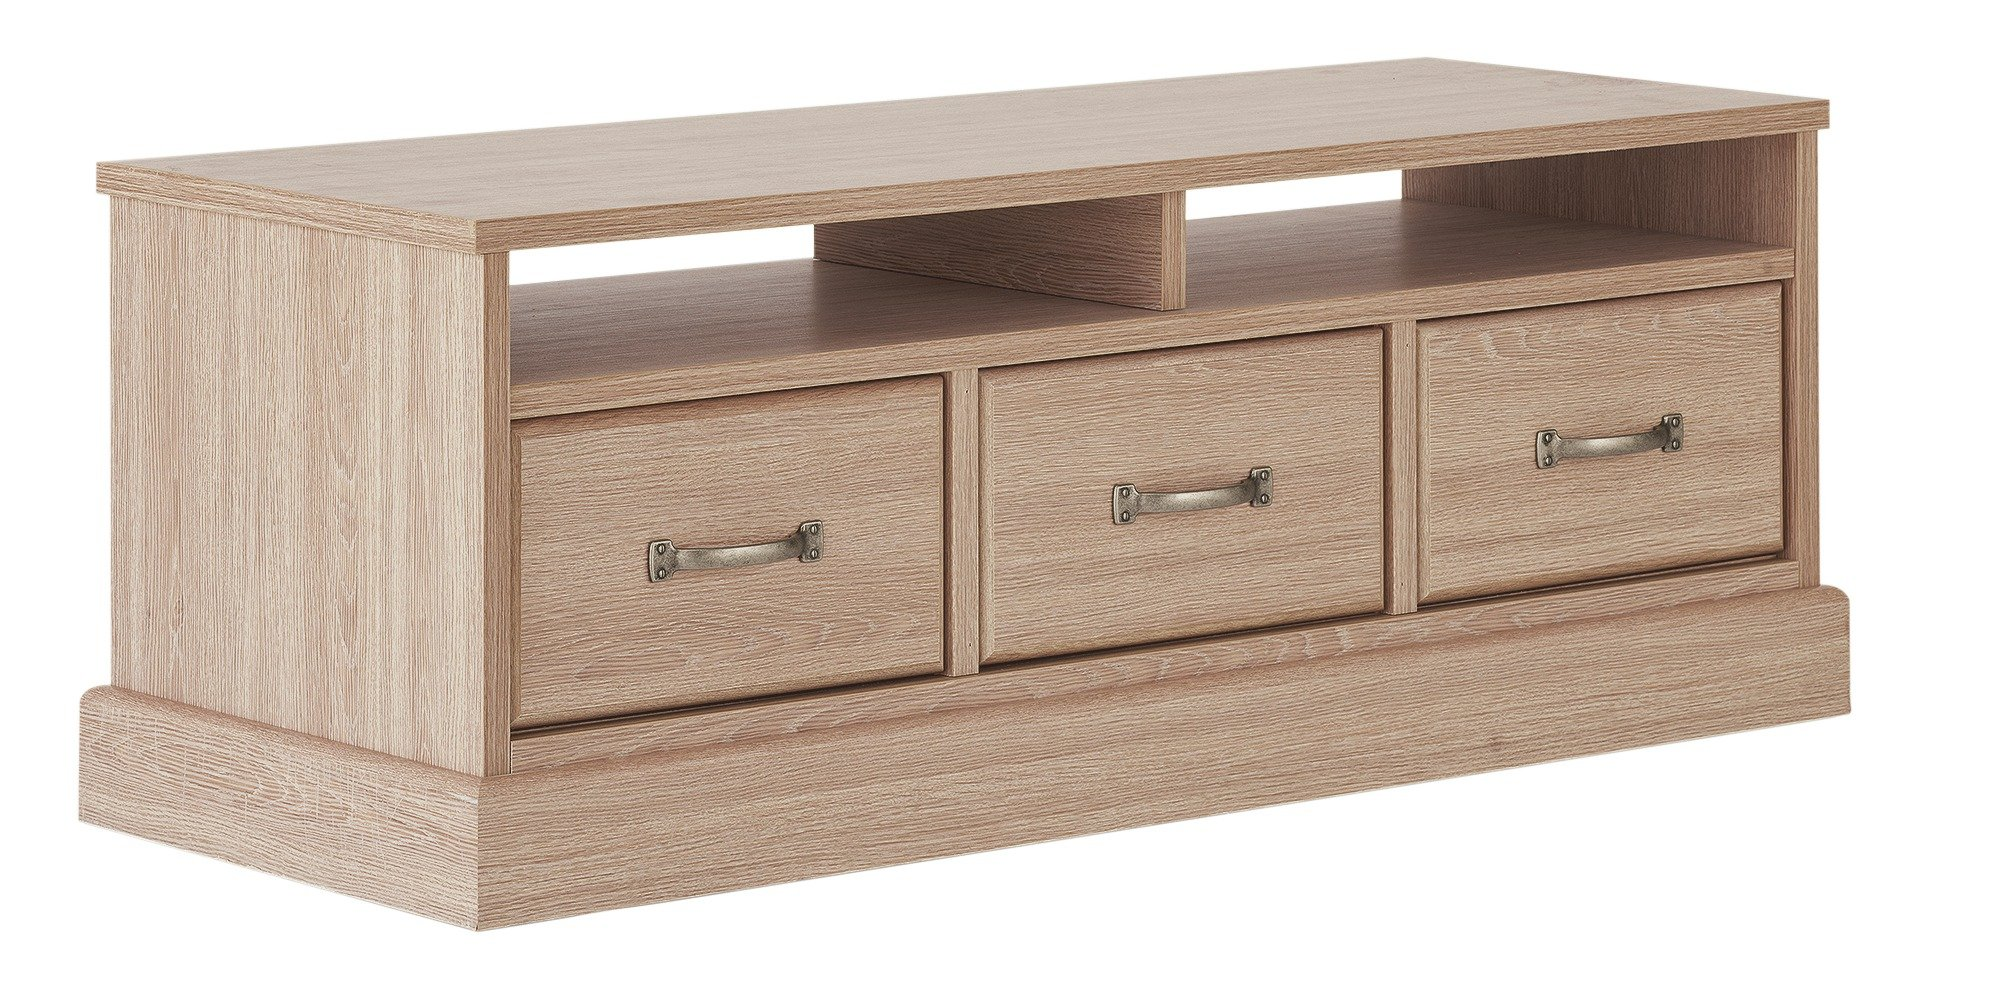 buy collection durham 3 drawer oak effect coffee table at argos.co